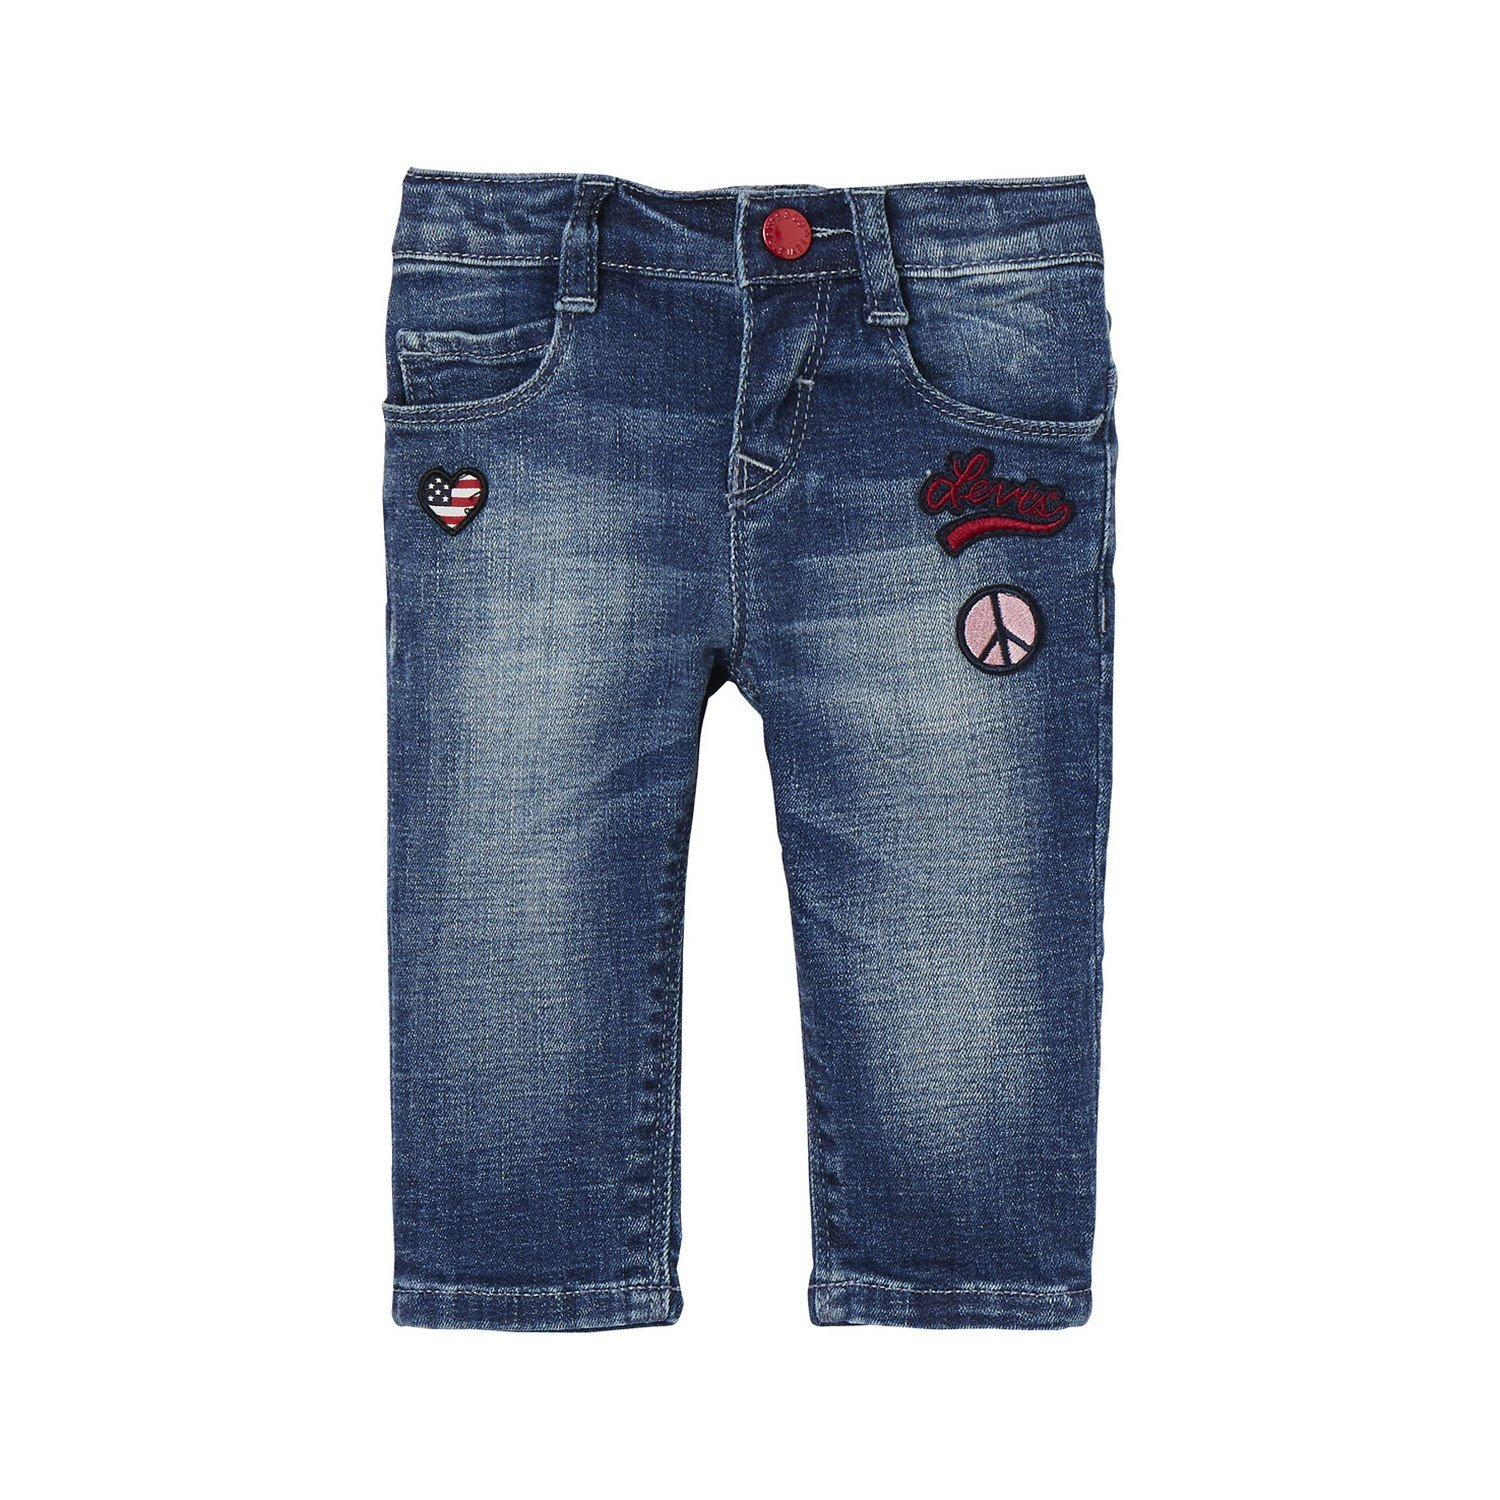 Levi's Kids Pant Starly, Pantalon Bébé Fille Levi' s Kids Pant Starly NK22534